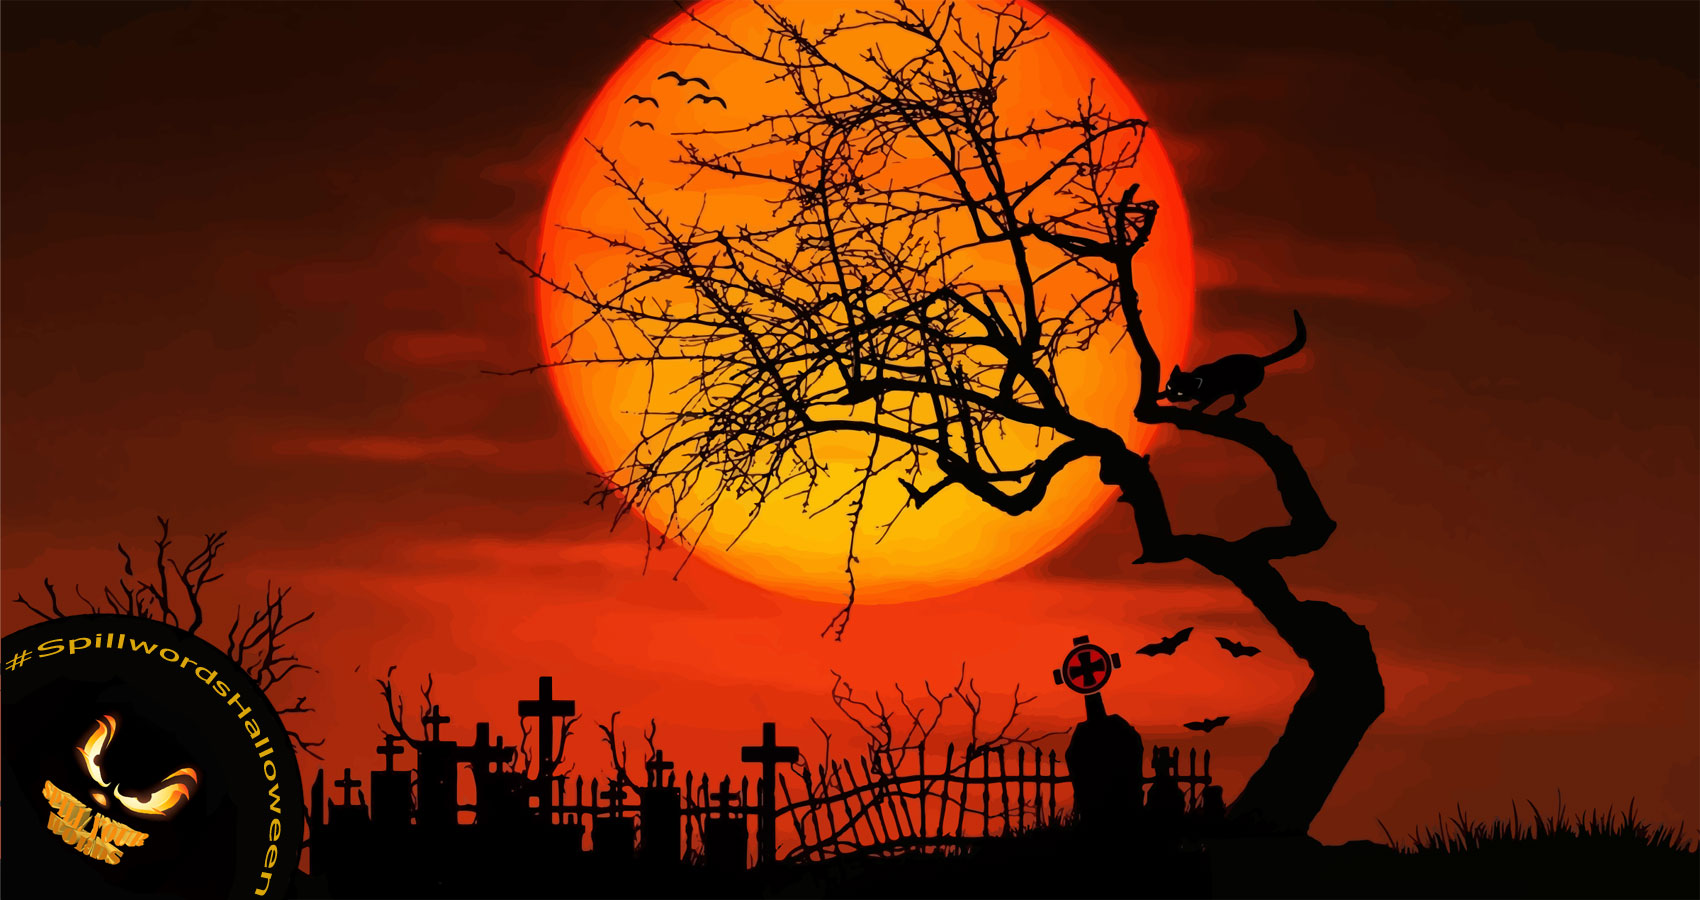 All Hallows' Eve by Jonel Abellanosa at Spillwords.com